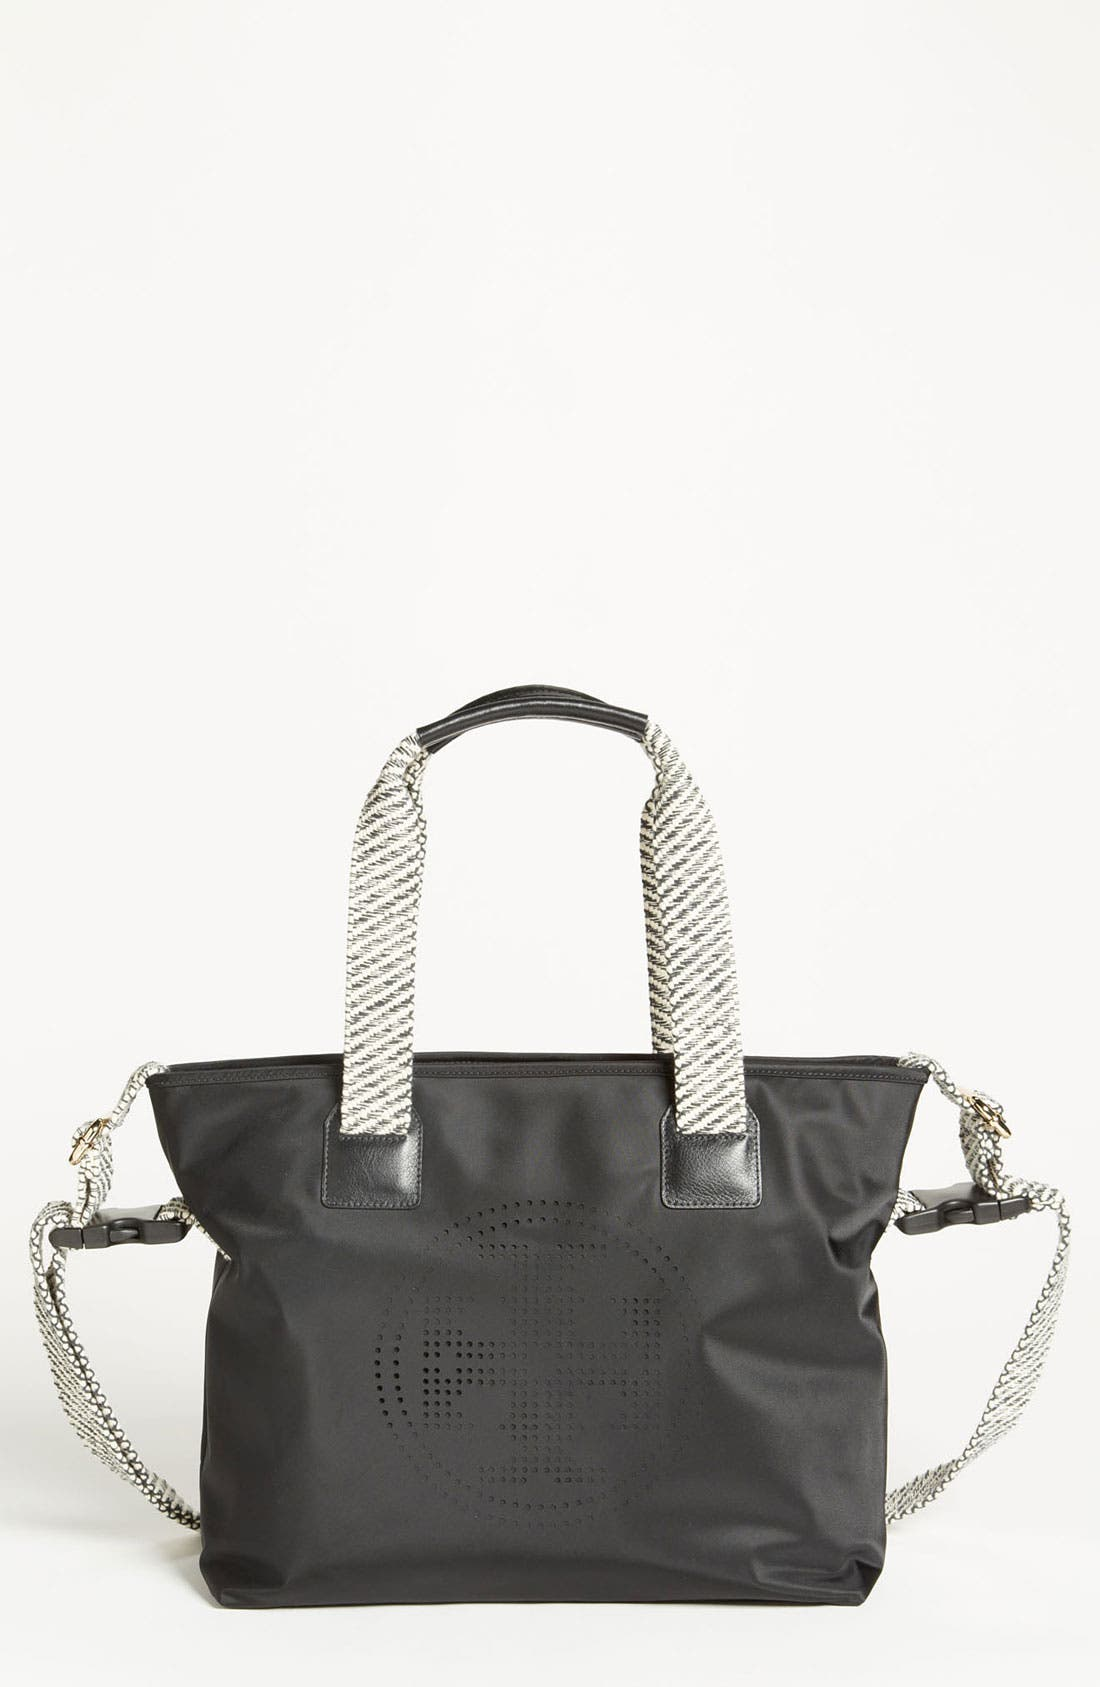 Alternate Image 1 Selected - Tory Burch Perforated Diaper Bag